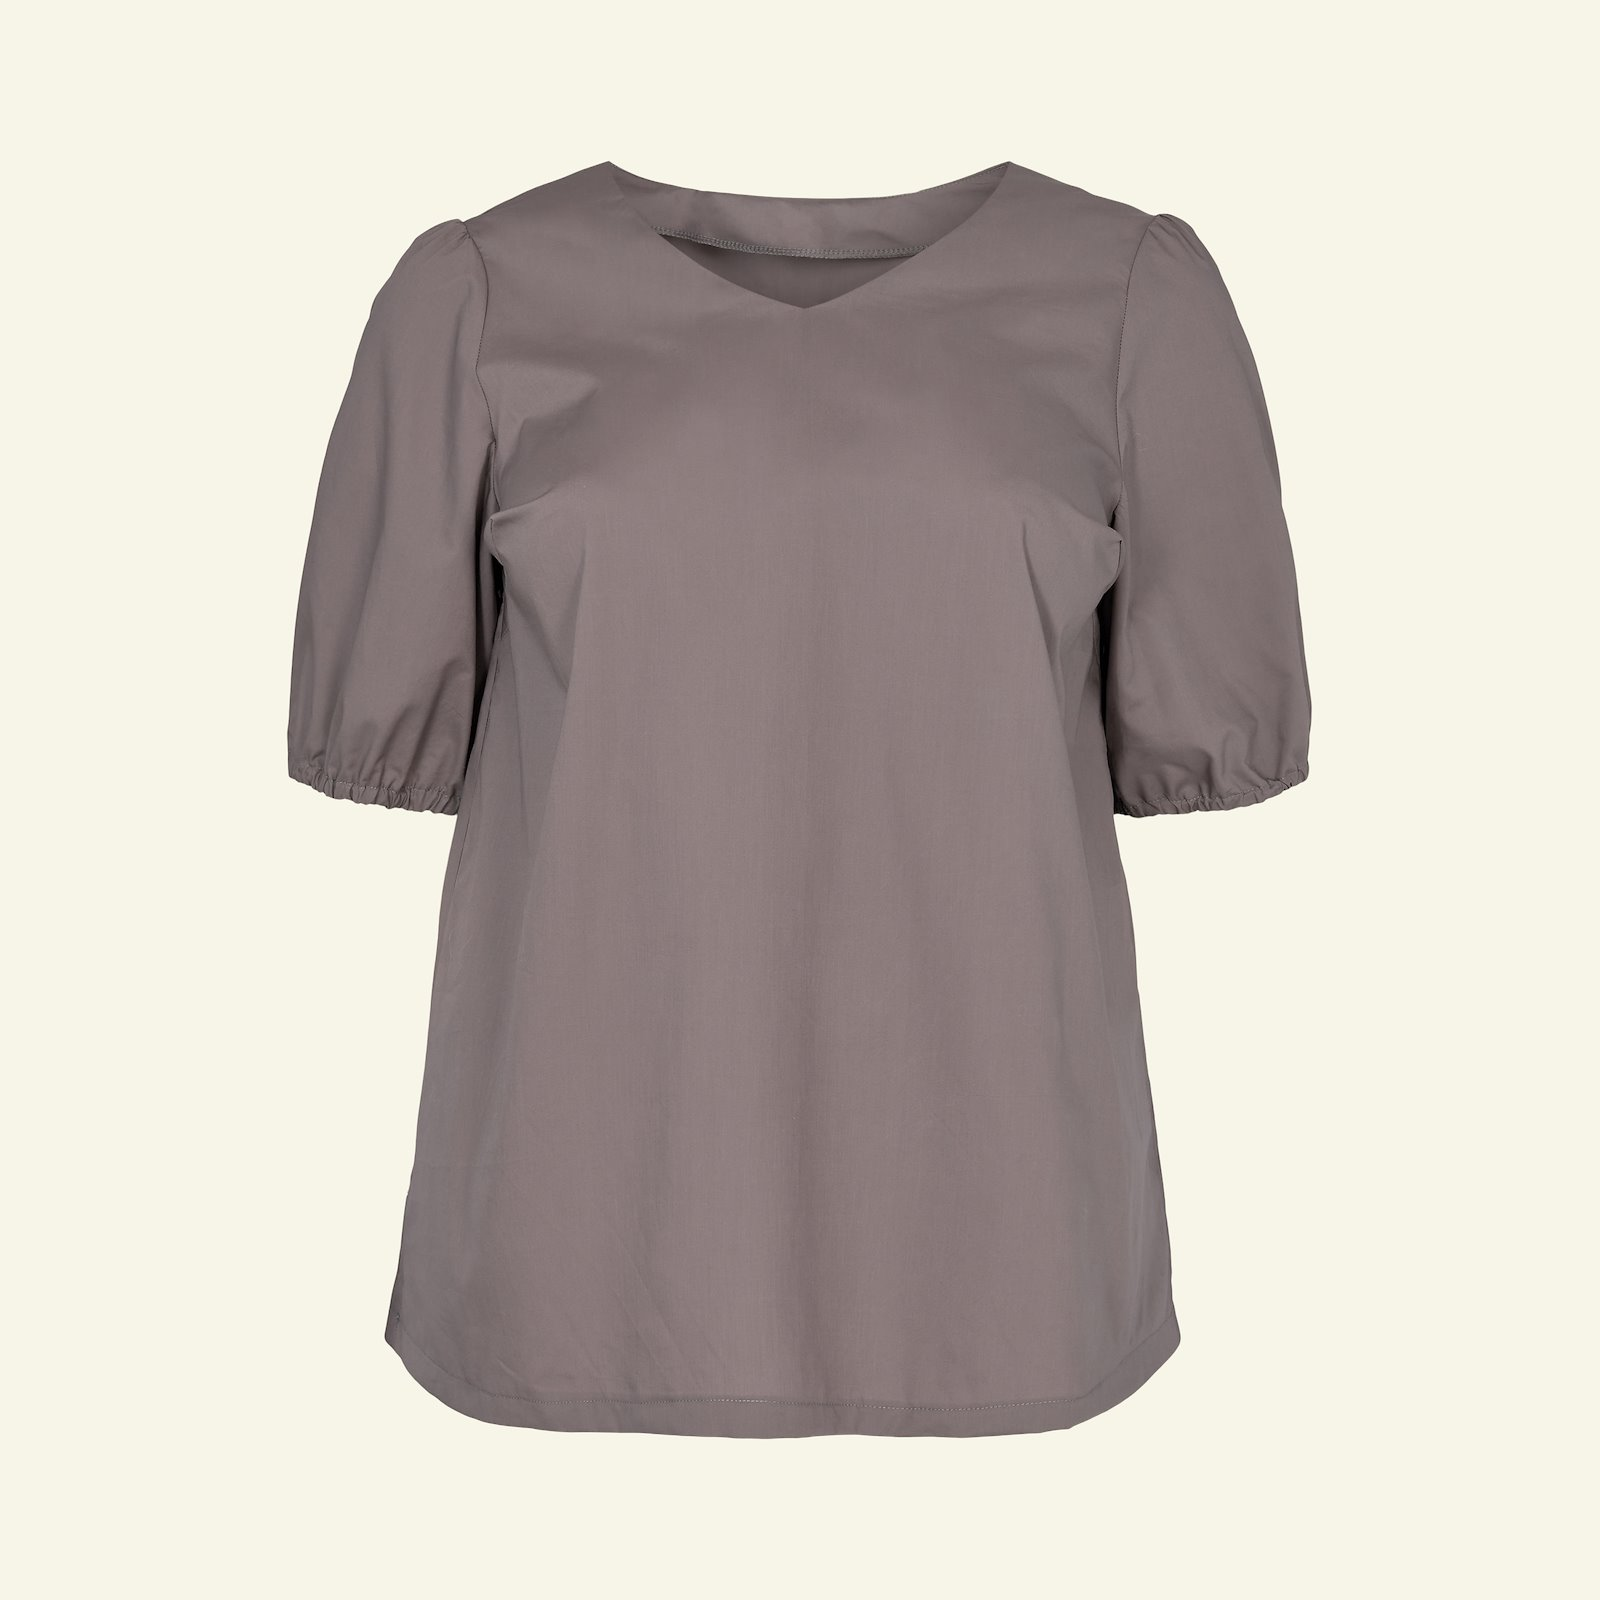 Blouse with long and short sleeve, 58/30 p72006_540121_sskit